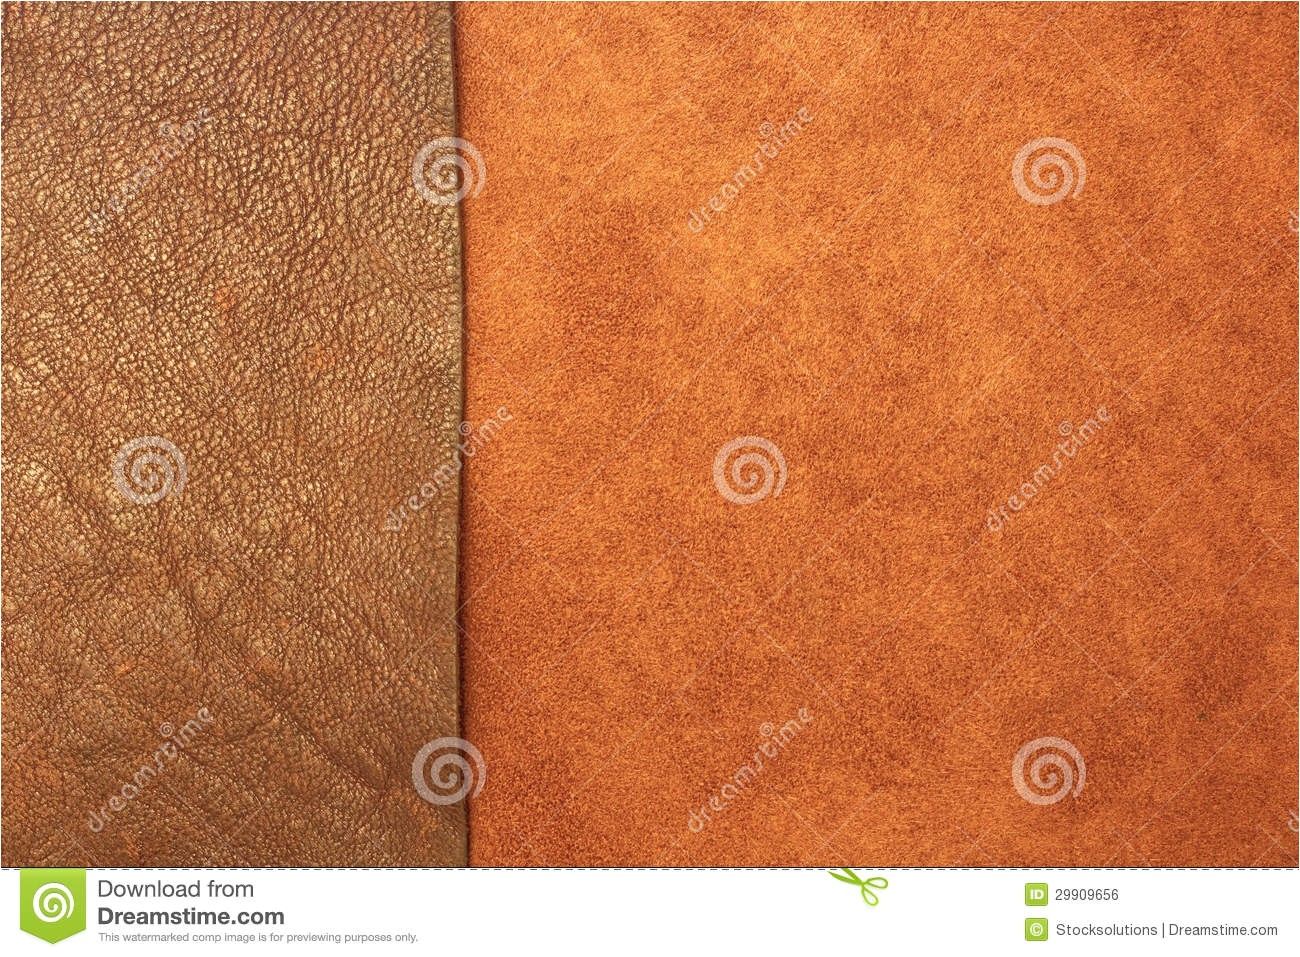 royalty free stock image genuine leather textured background both tanned suede finishes made animal skin used quality durable clothing image29909656